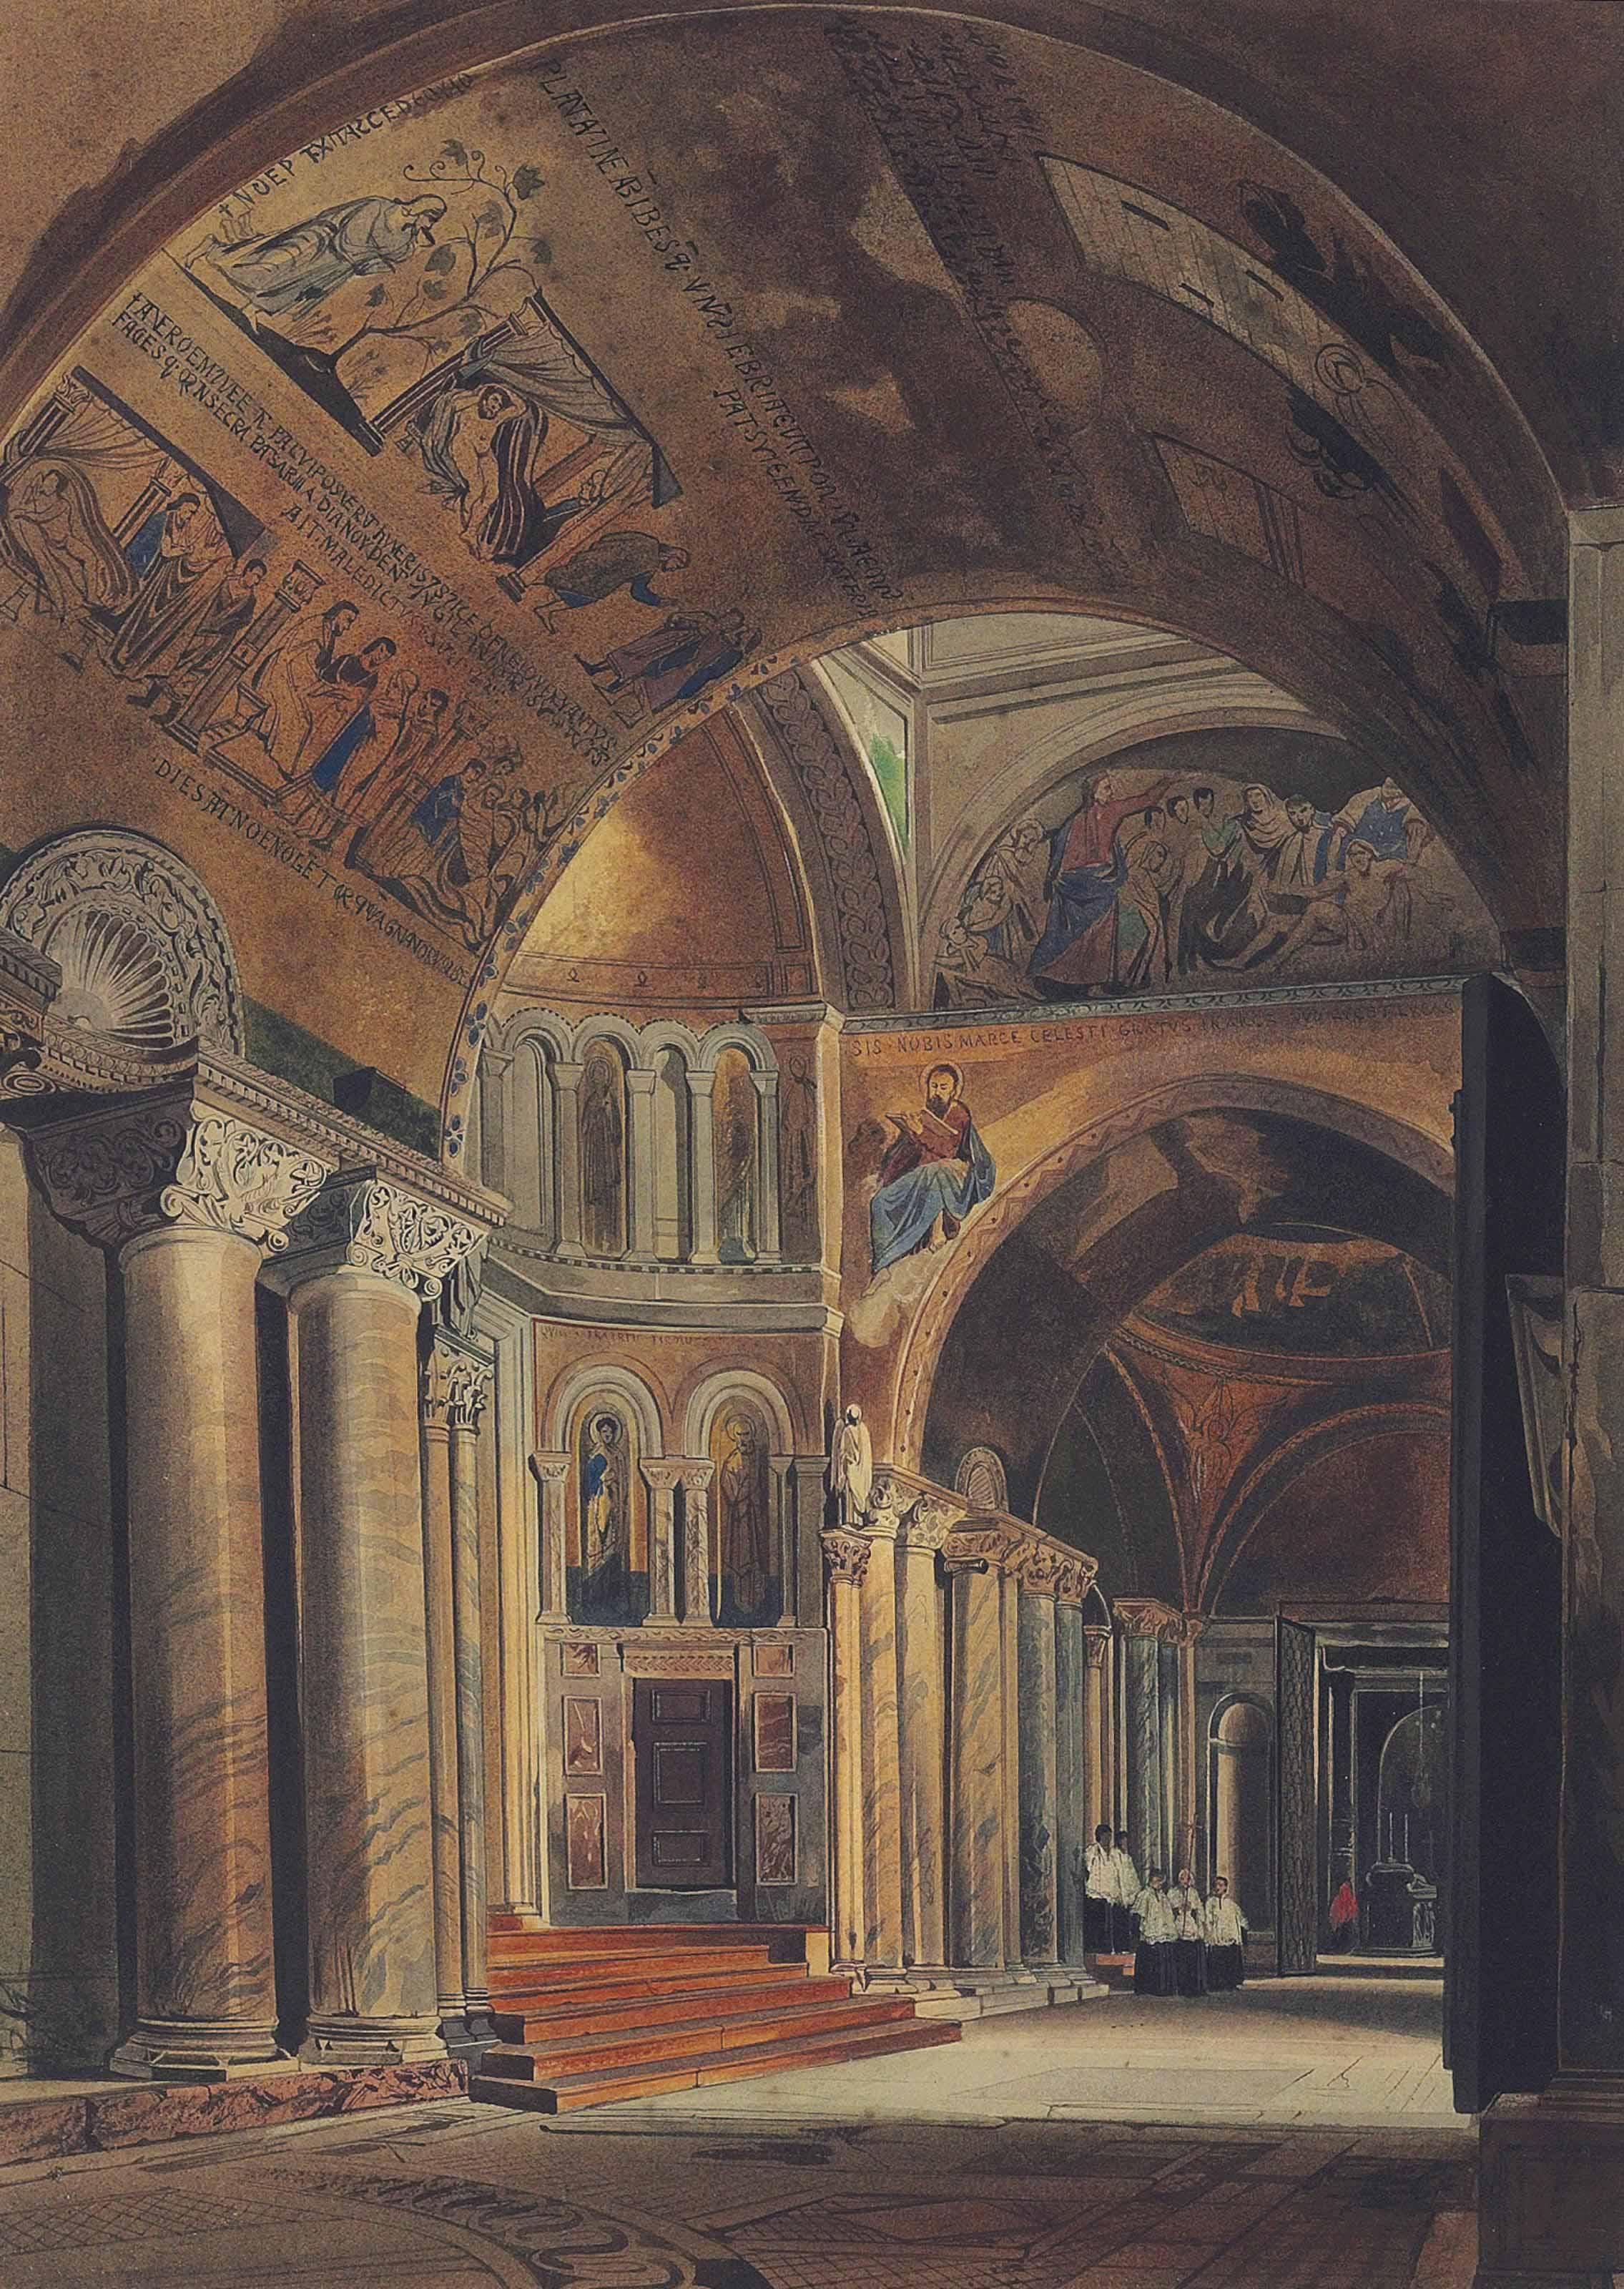 The interior vestibule of St Mark's, Venice